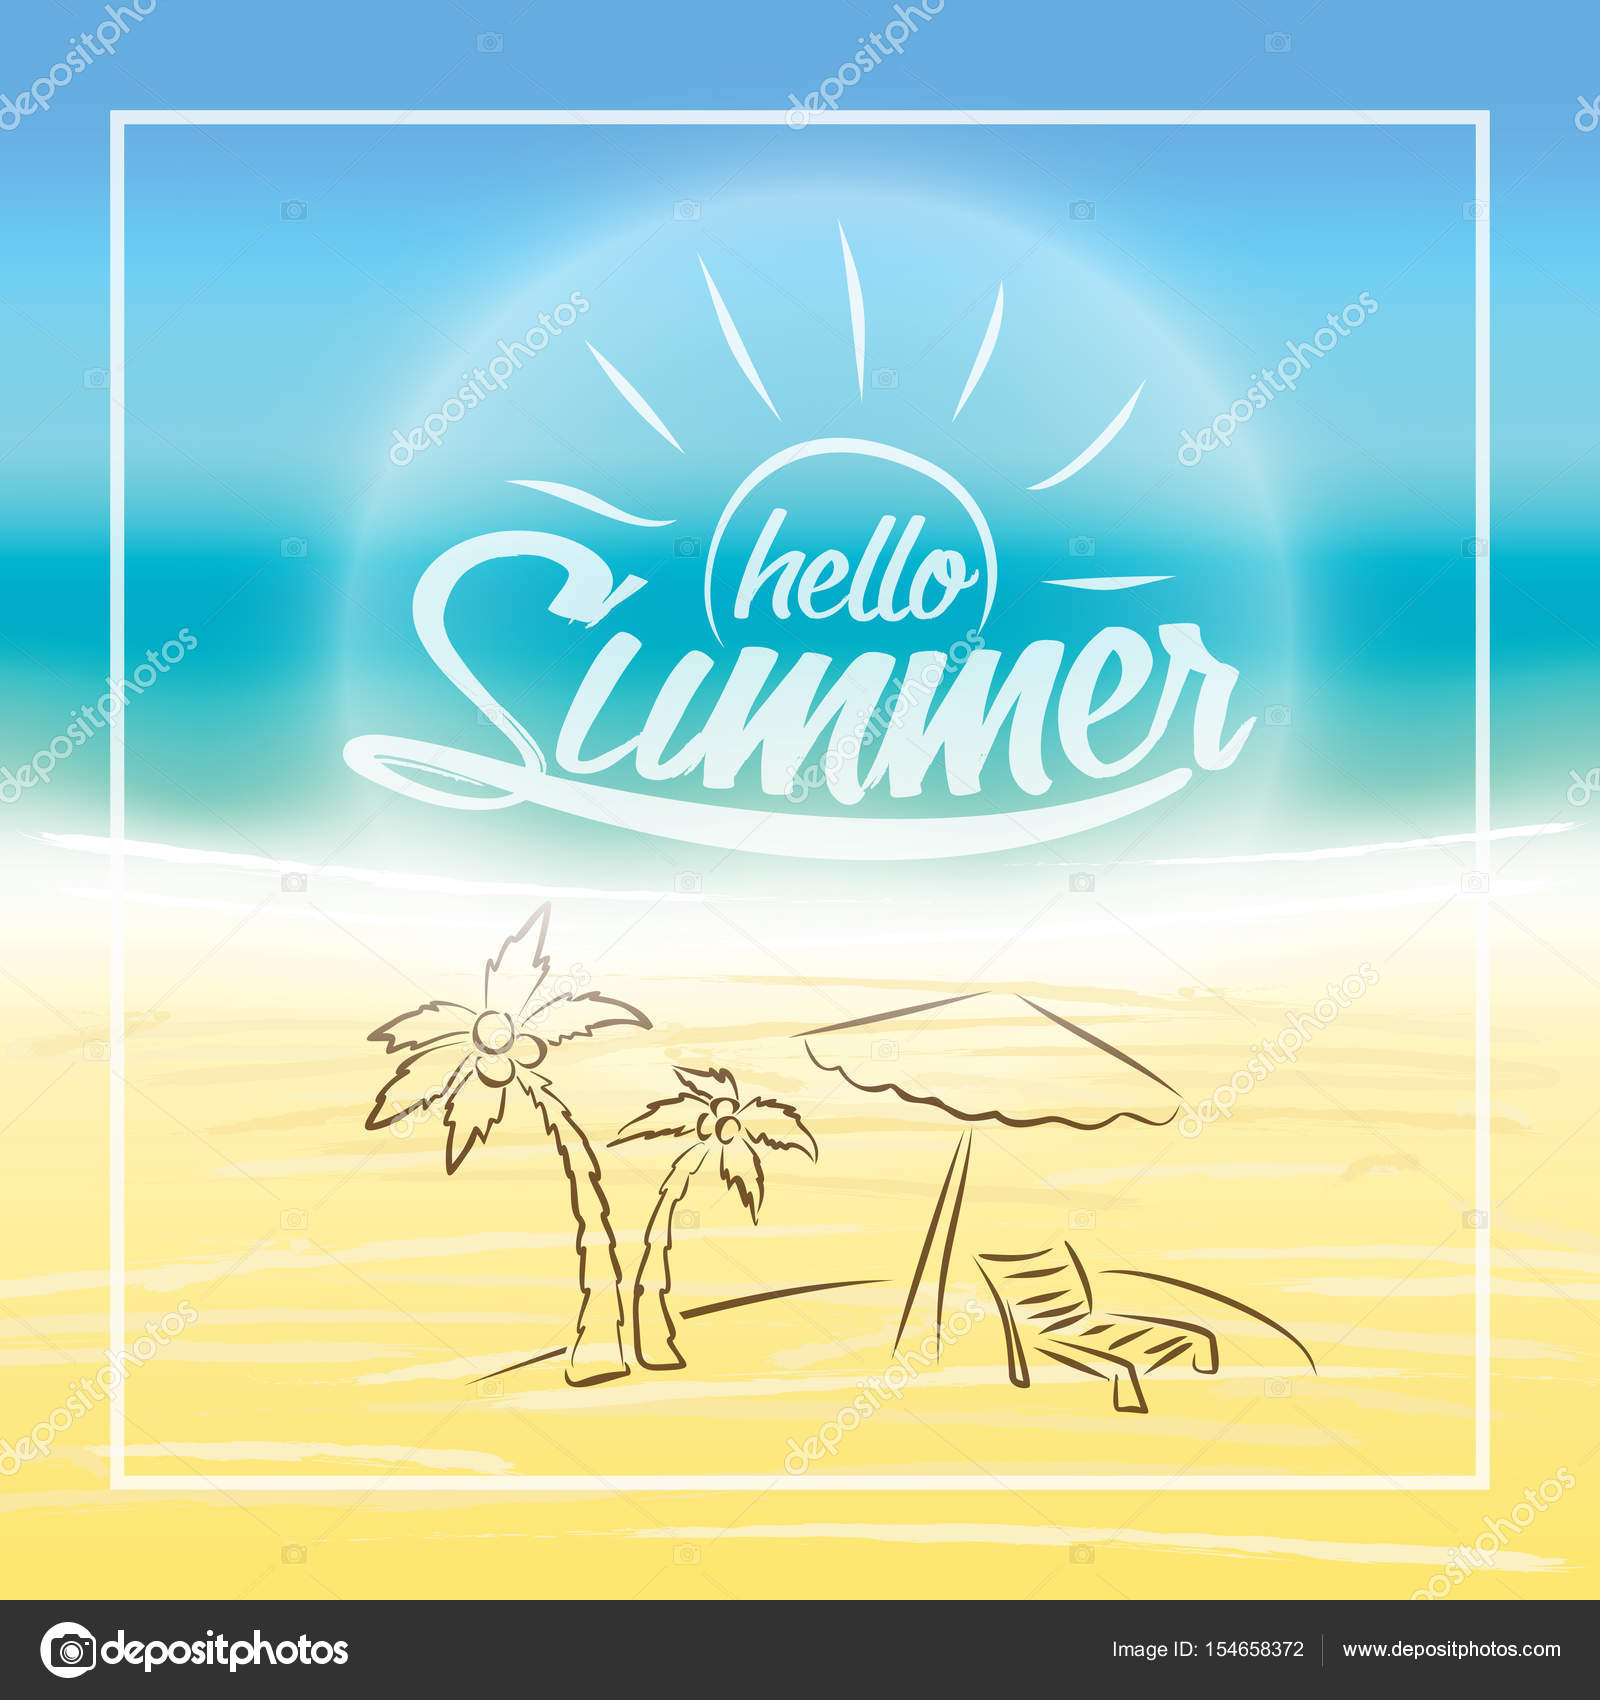 Summer Is Coming Text On Blurred Summer Beach Background. Hello Summer. U2014  Stock Vector